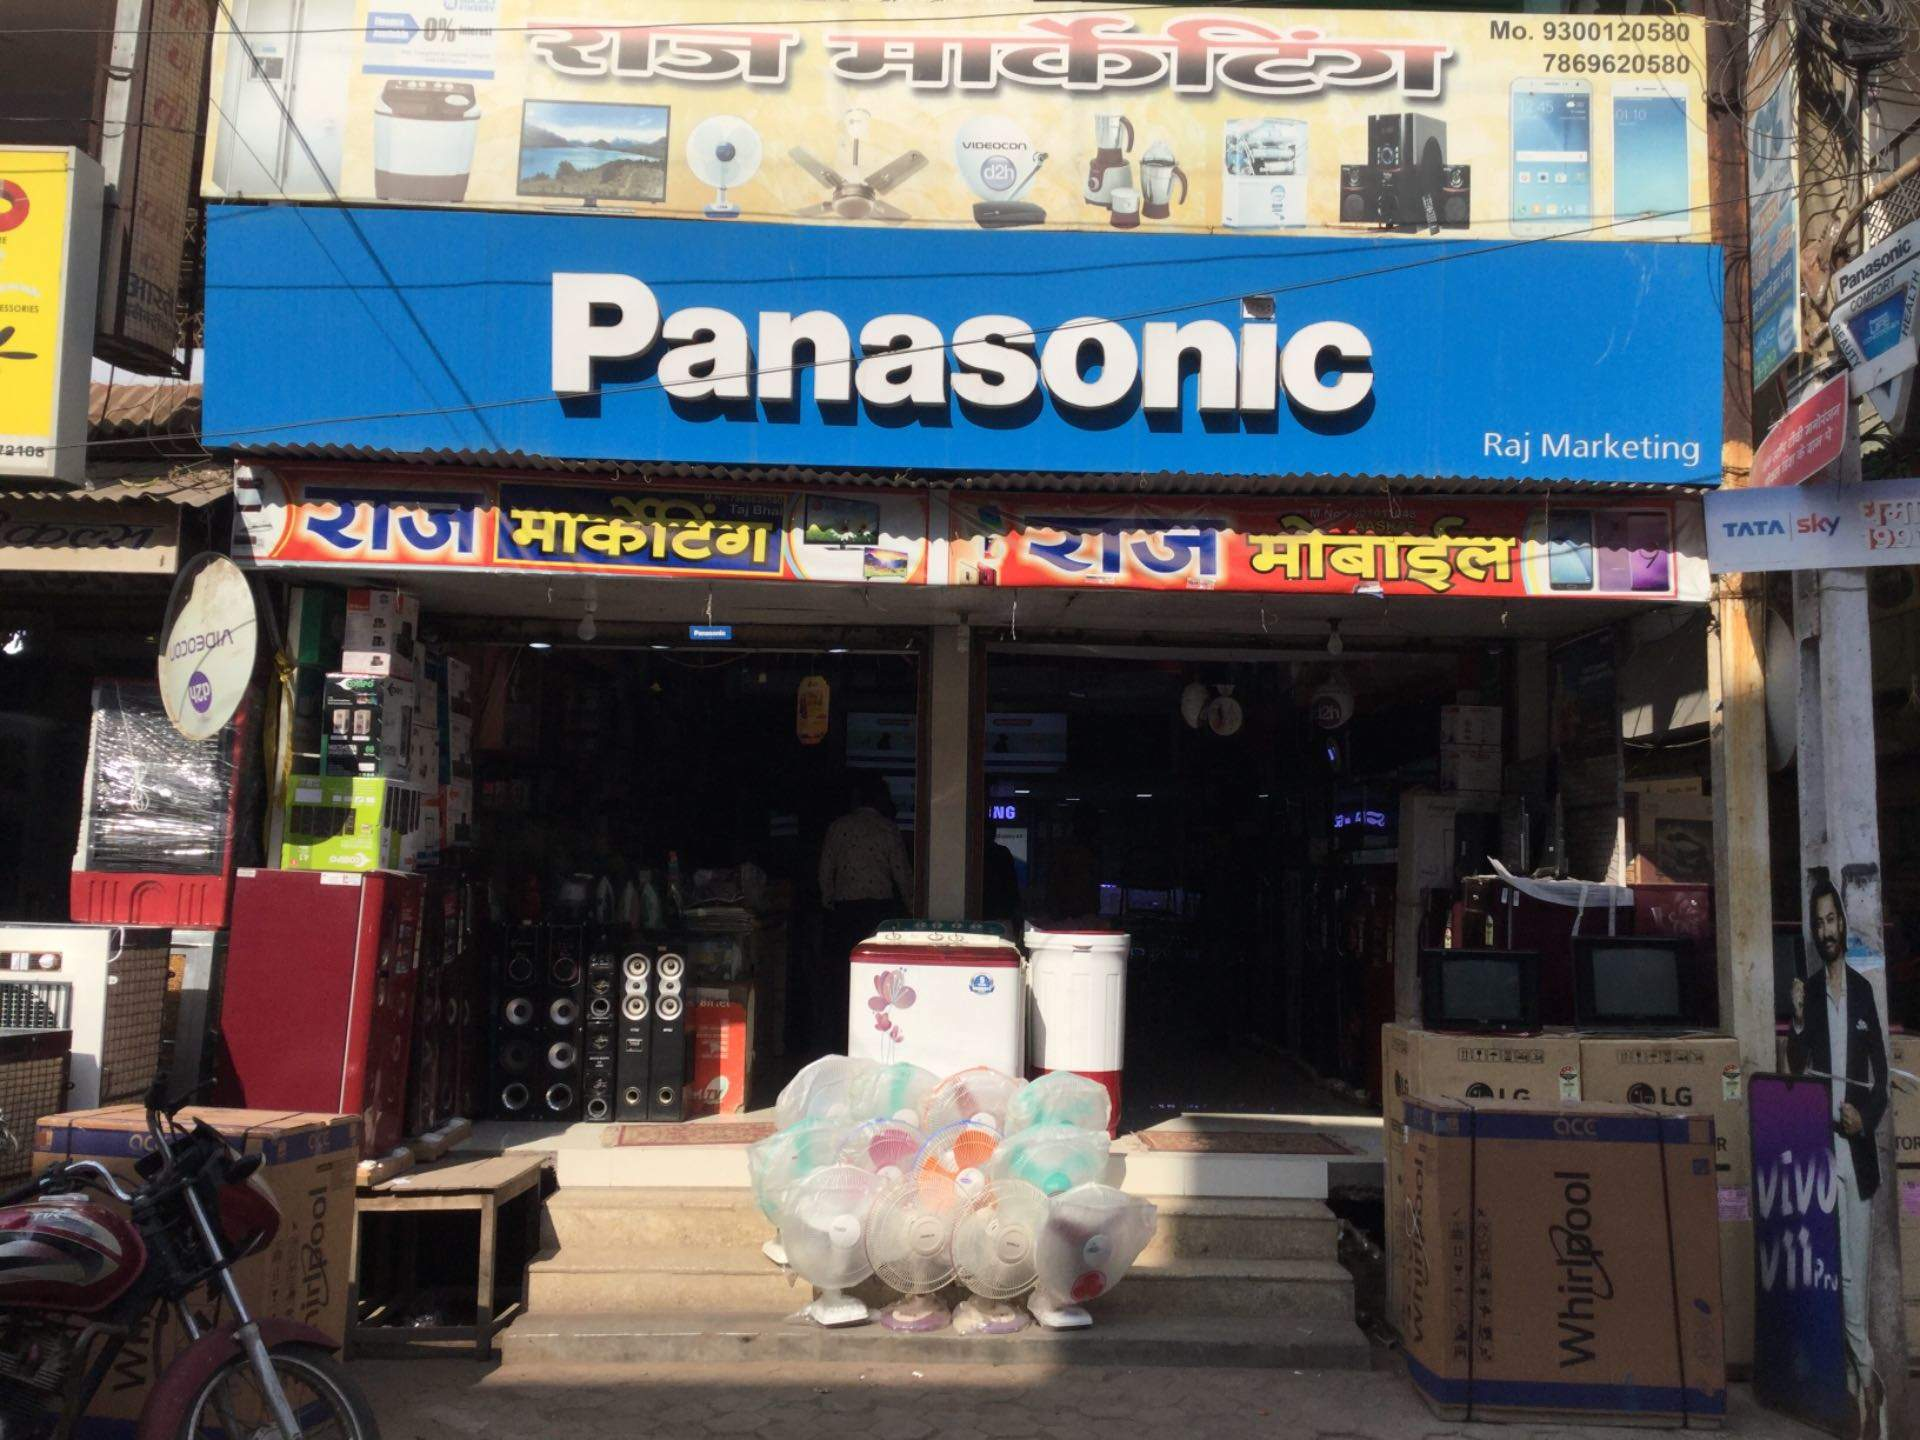 Top 100 Mobile Shops in Rajnandgaon - Best Mobile Stores